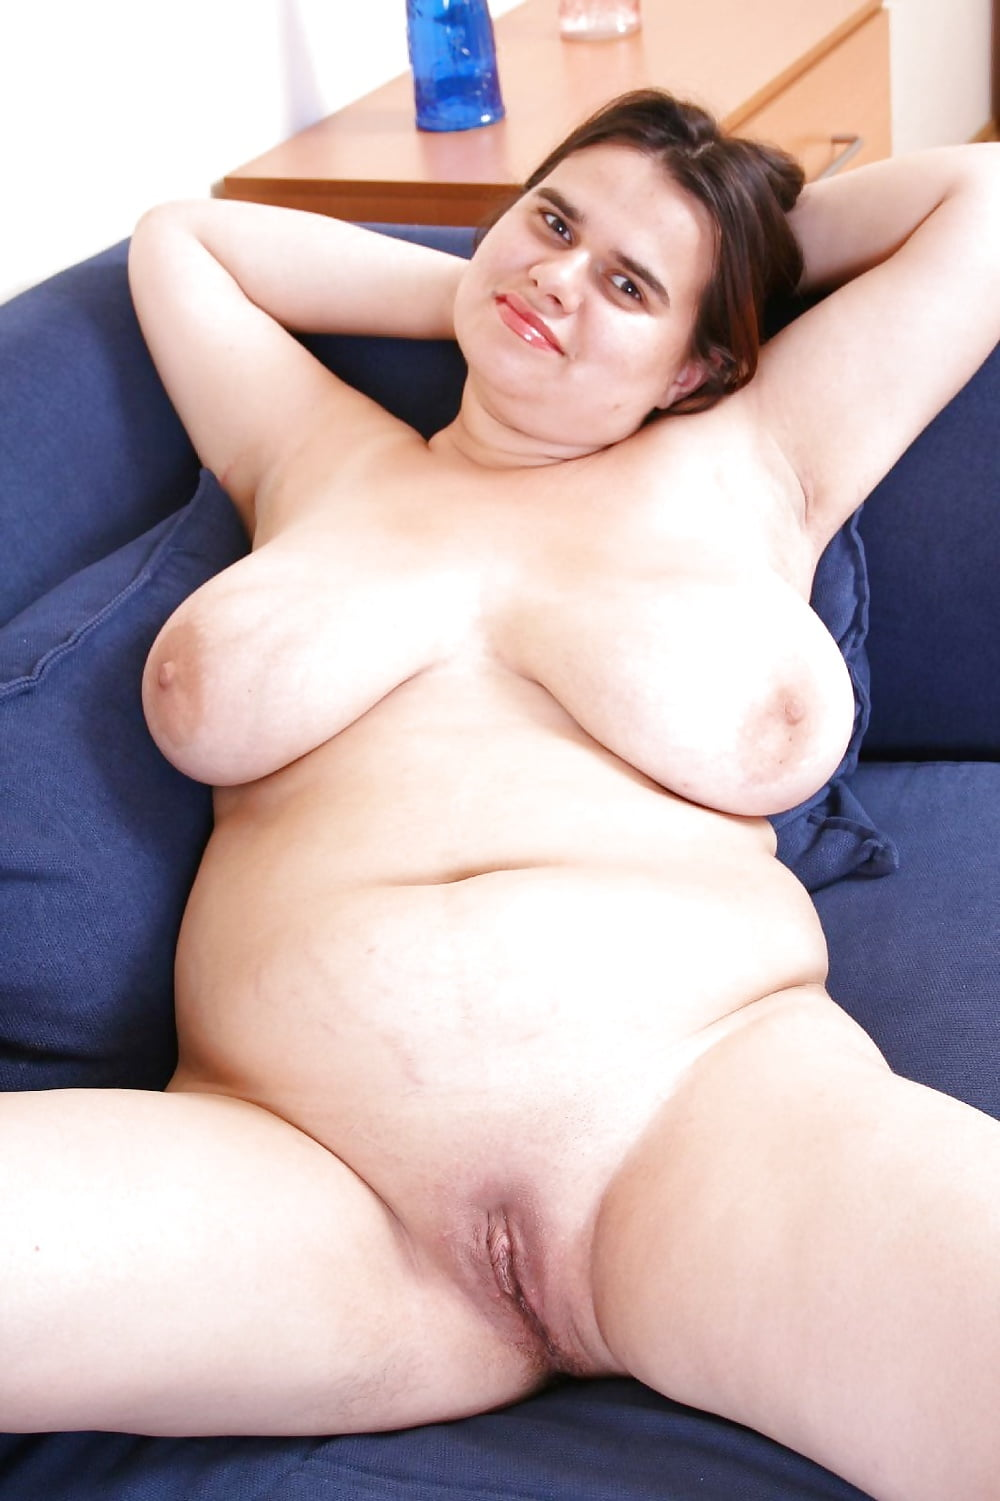 fresh-fat-girls-nude-sex-media-download